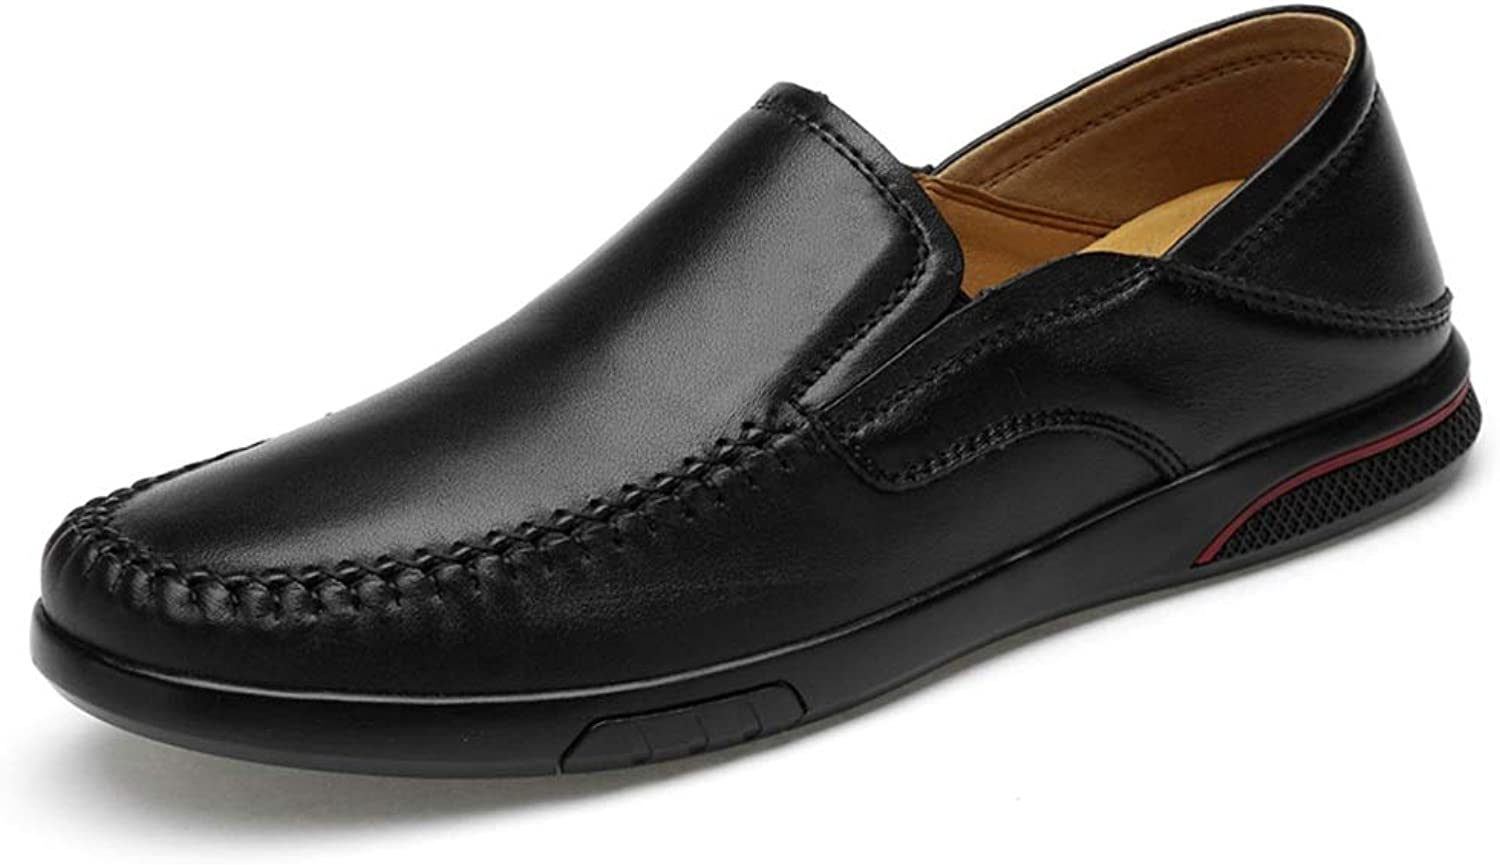 MUMUWU Light-Weight Slip-on Penny Loafers for Men Leather Upper Flat Stitch Driving Dress shoes (color   Black, Size   9 D(M) US)